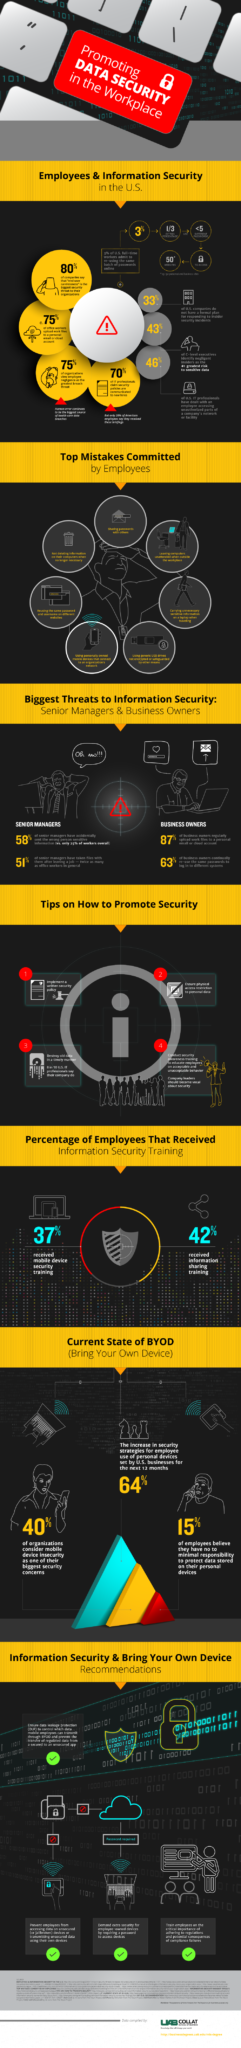 Promoting Data Security in the Workplace